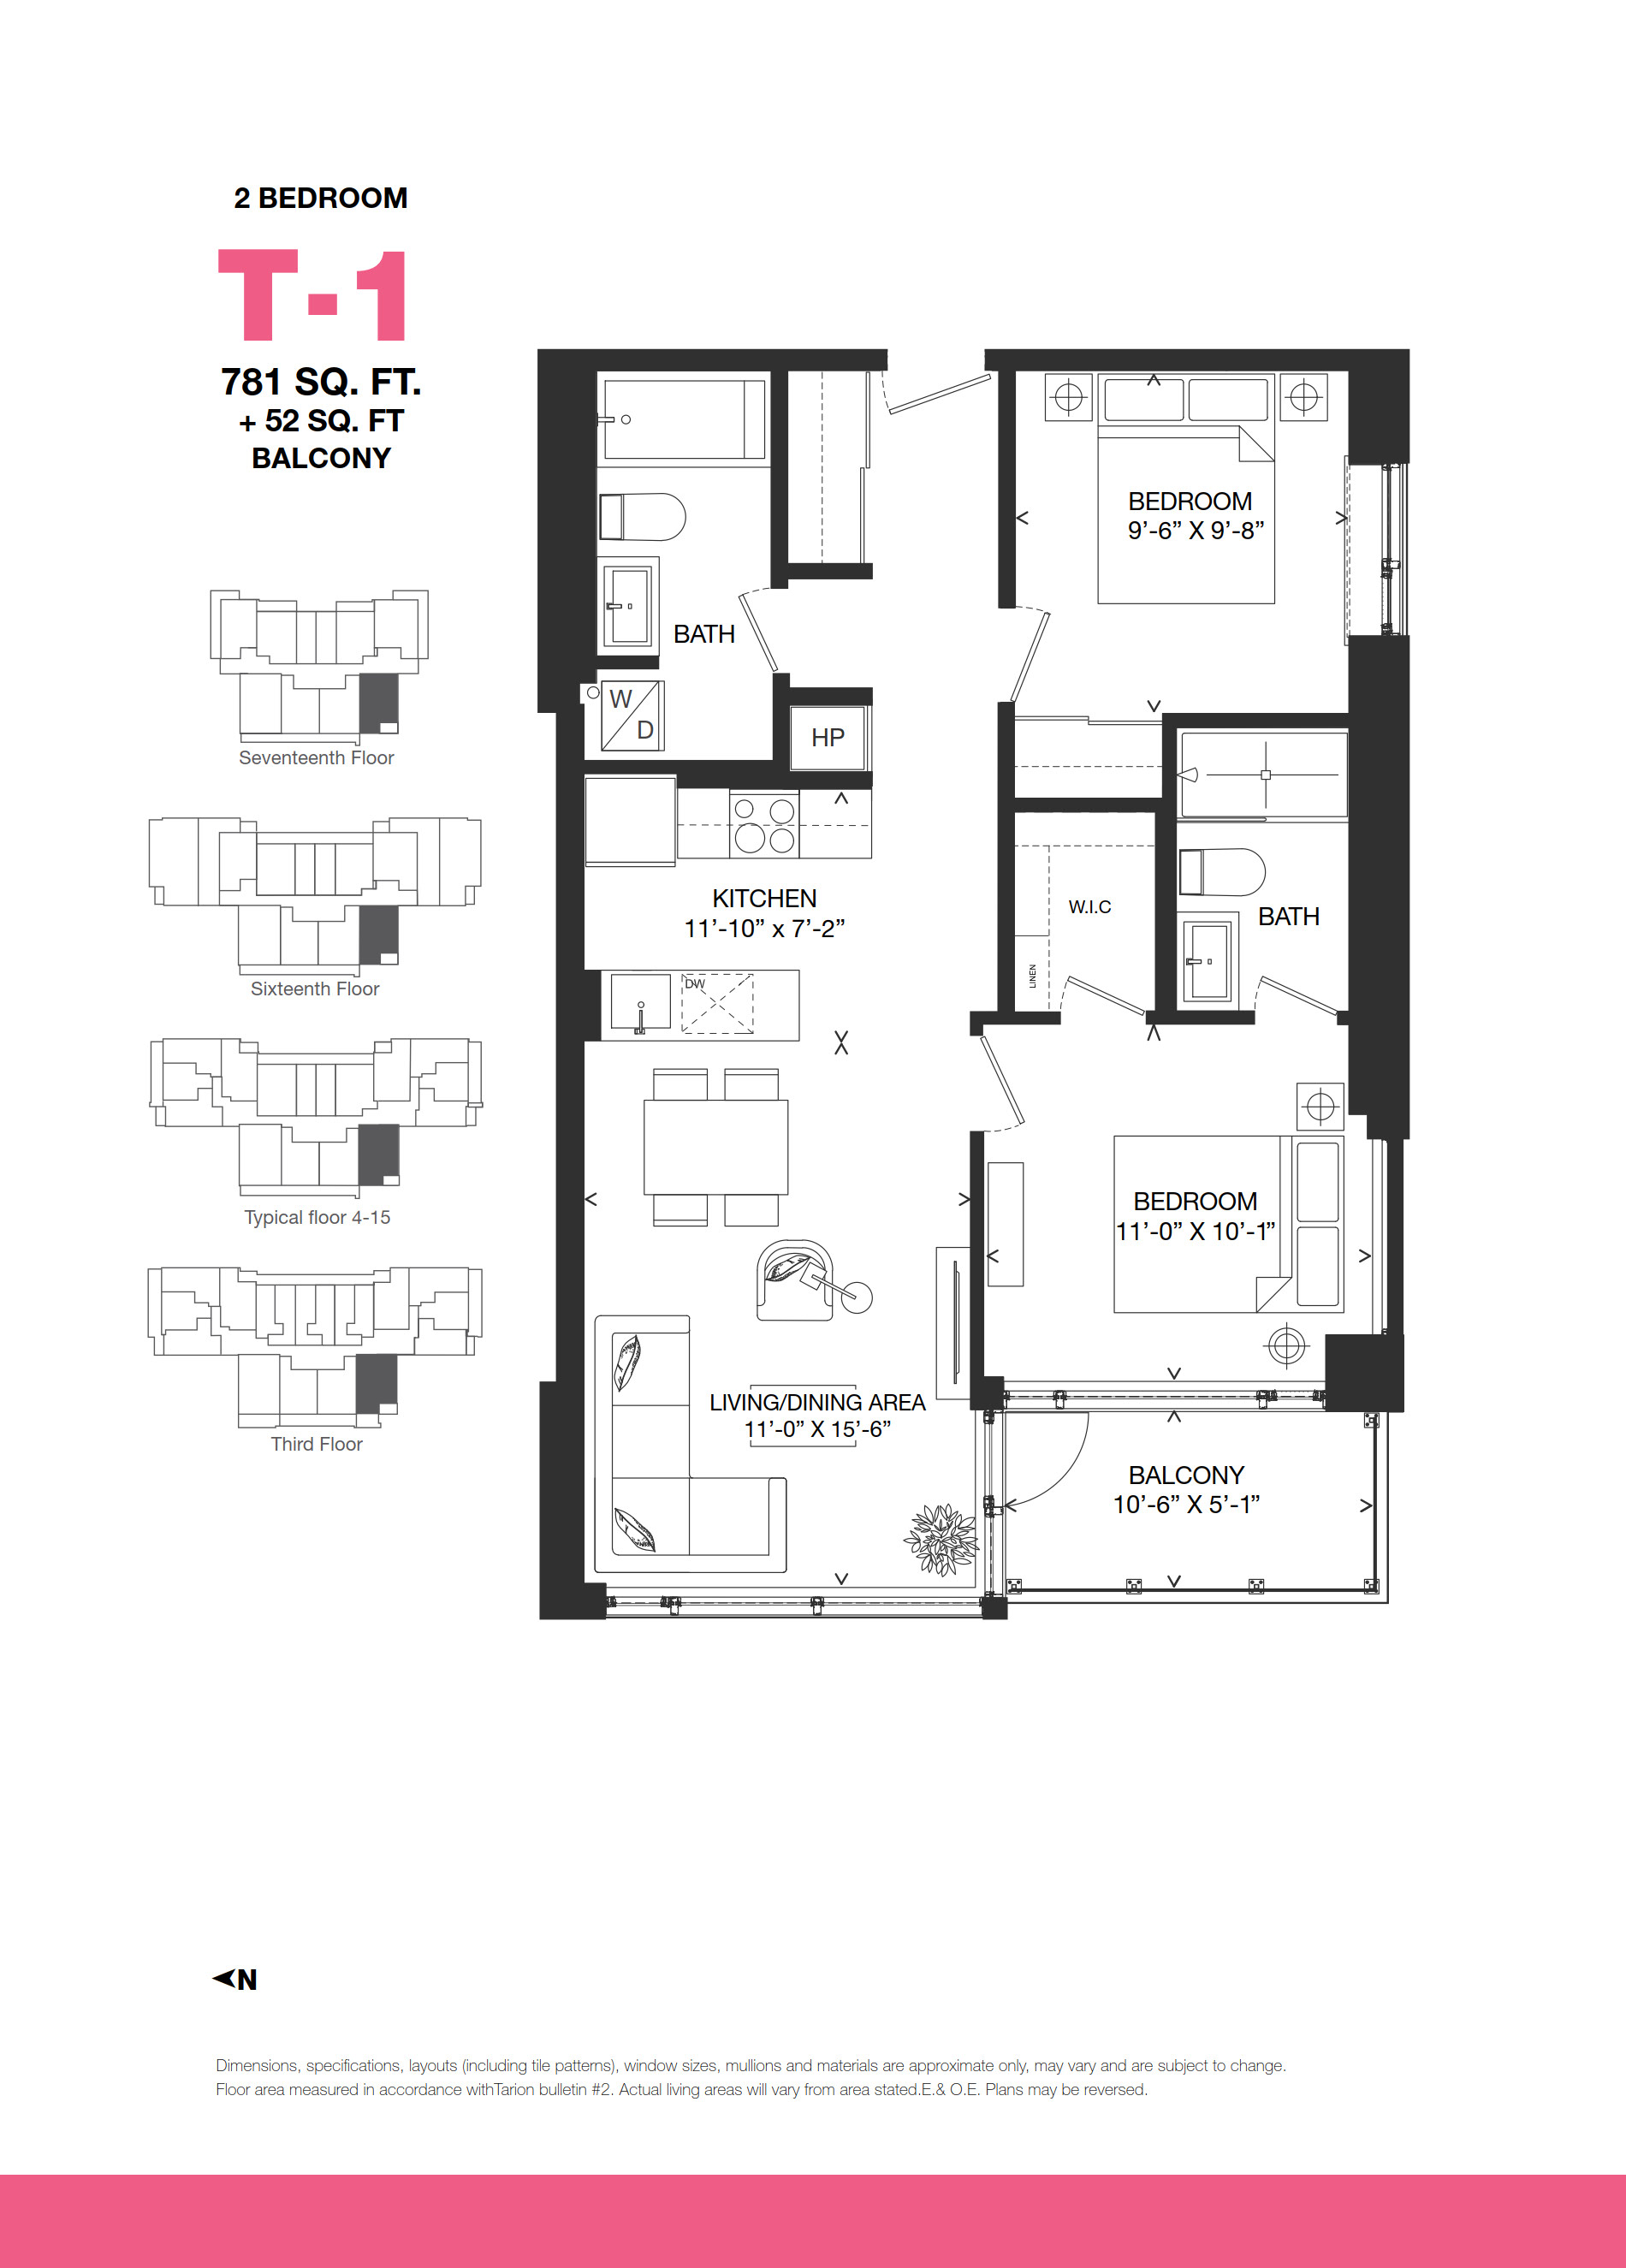 Bowery condos floor plans ottawa canada for Floor plans canada